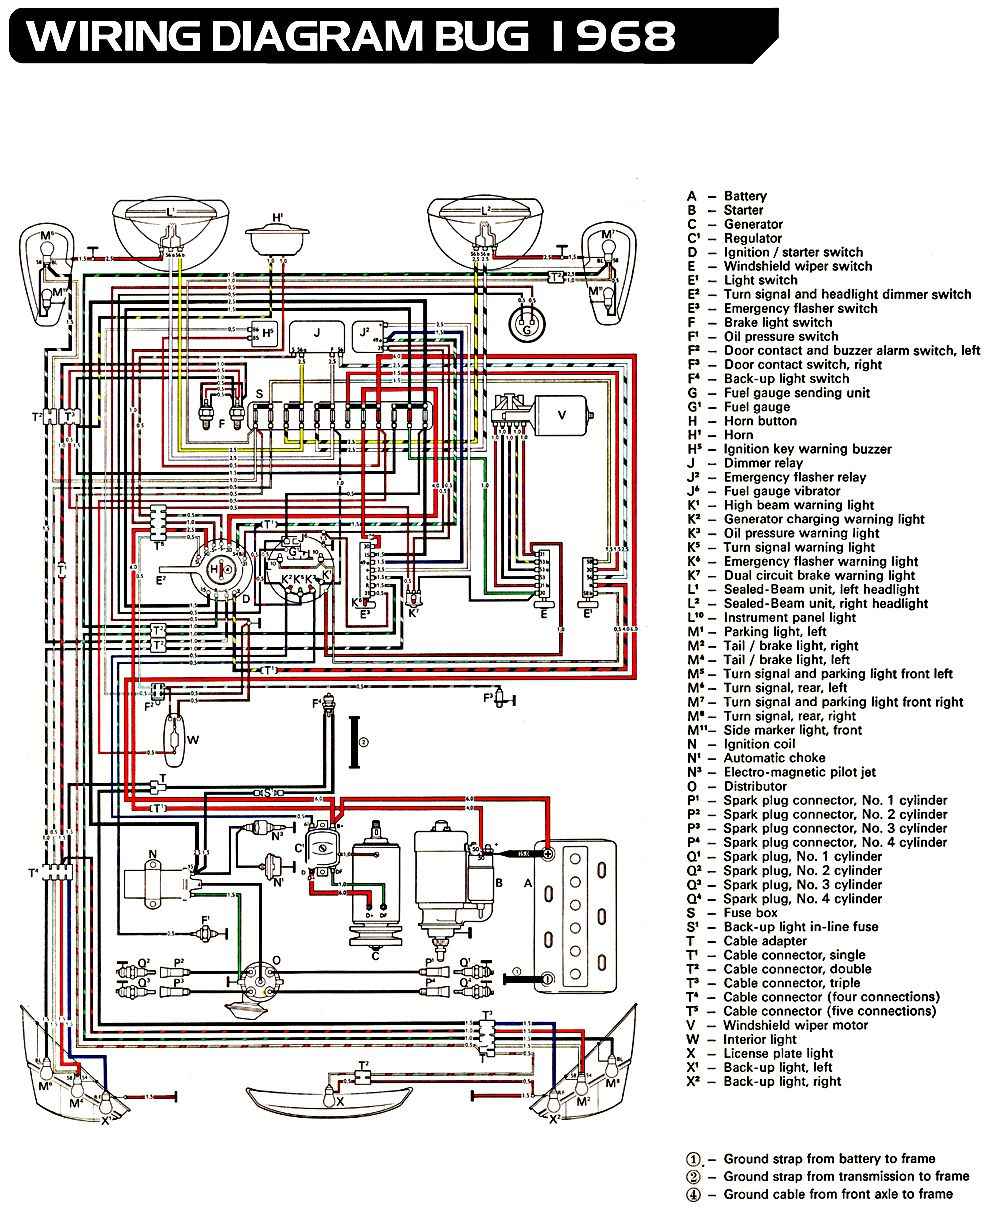 3a1908112d3826270ed5e3be362292bf 1968 vw bug wiring diagram 1958 chevrolet wiring diagram \u2022 wiring 1957 vw beetle wiring diagram at bayanpartner.co